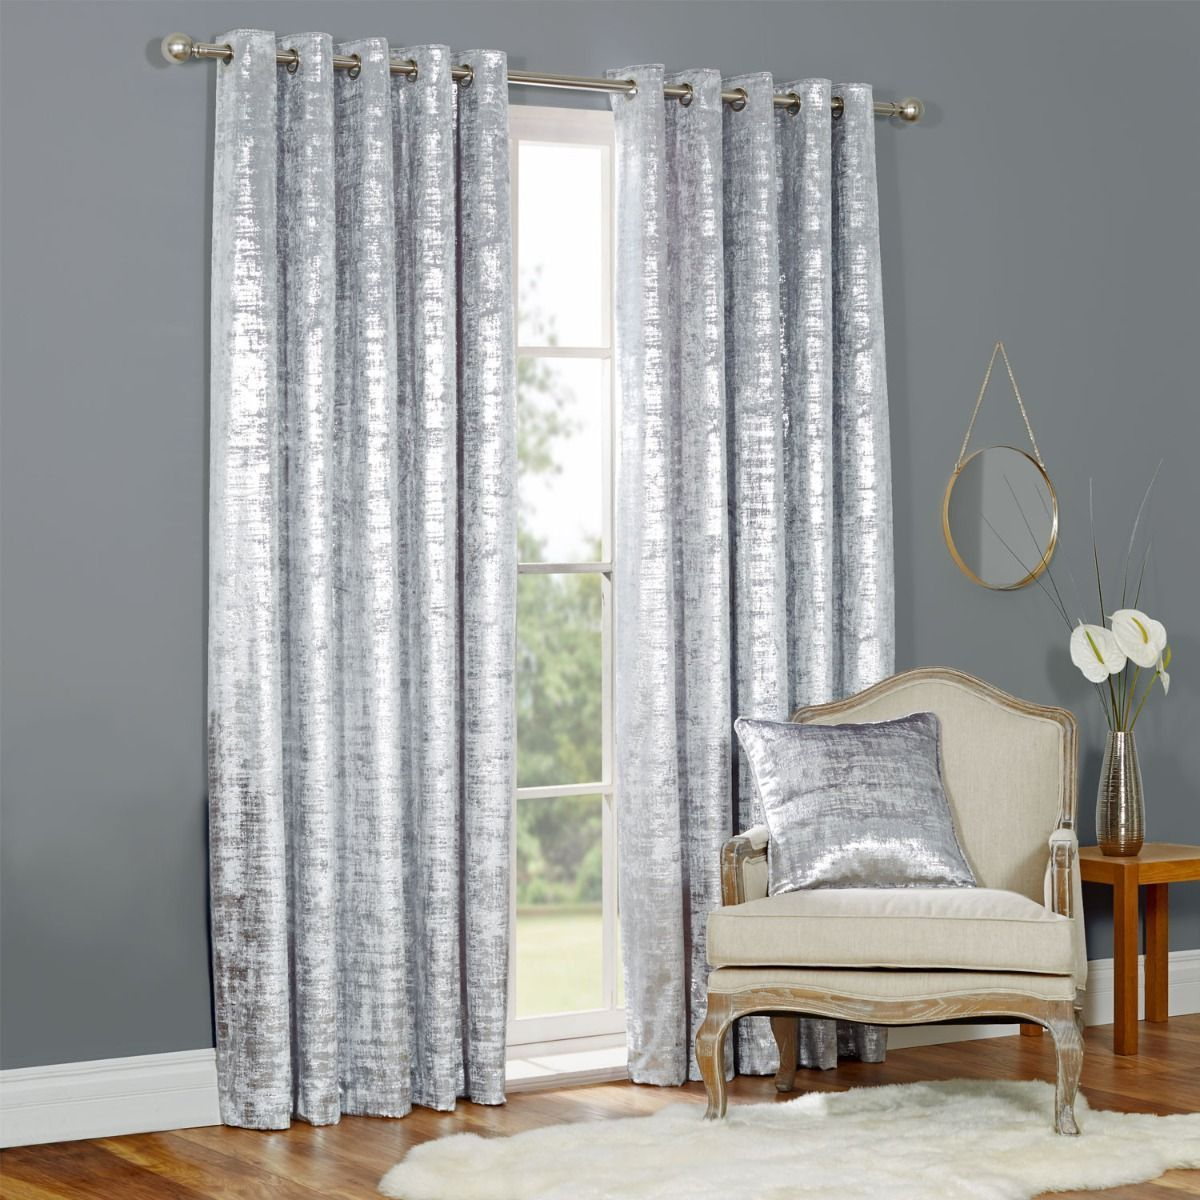 There S Nothing Quite So Luxurious As Velvet Unless It S Velvet With A Metallic Shimmer Silver Curtains Silver Home Accessories Living Room Decor Inspiration #silver #curtains #for #living #room